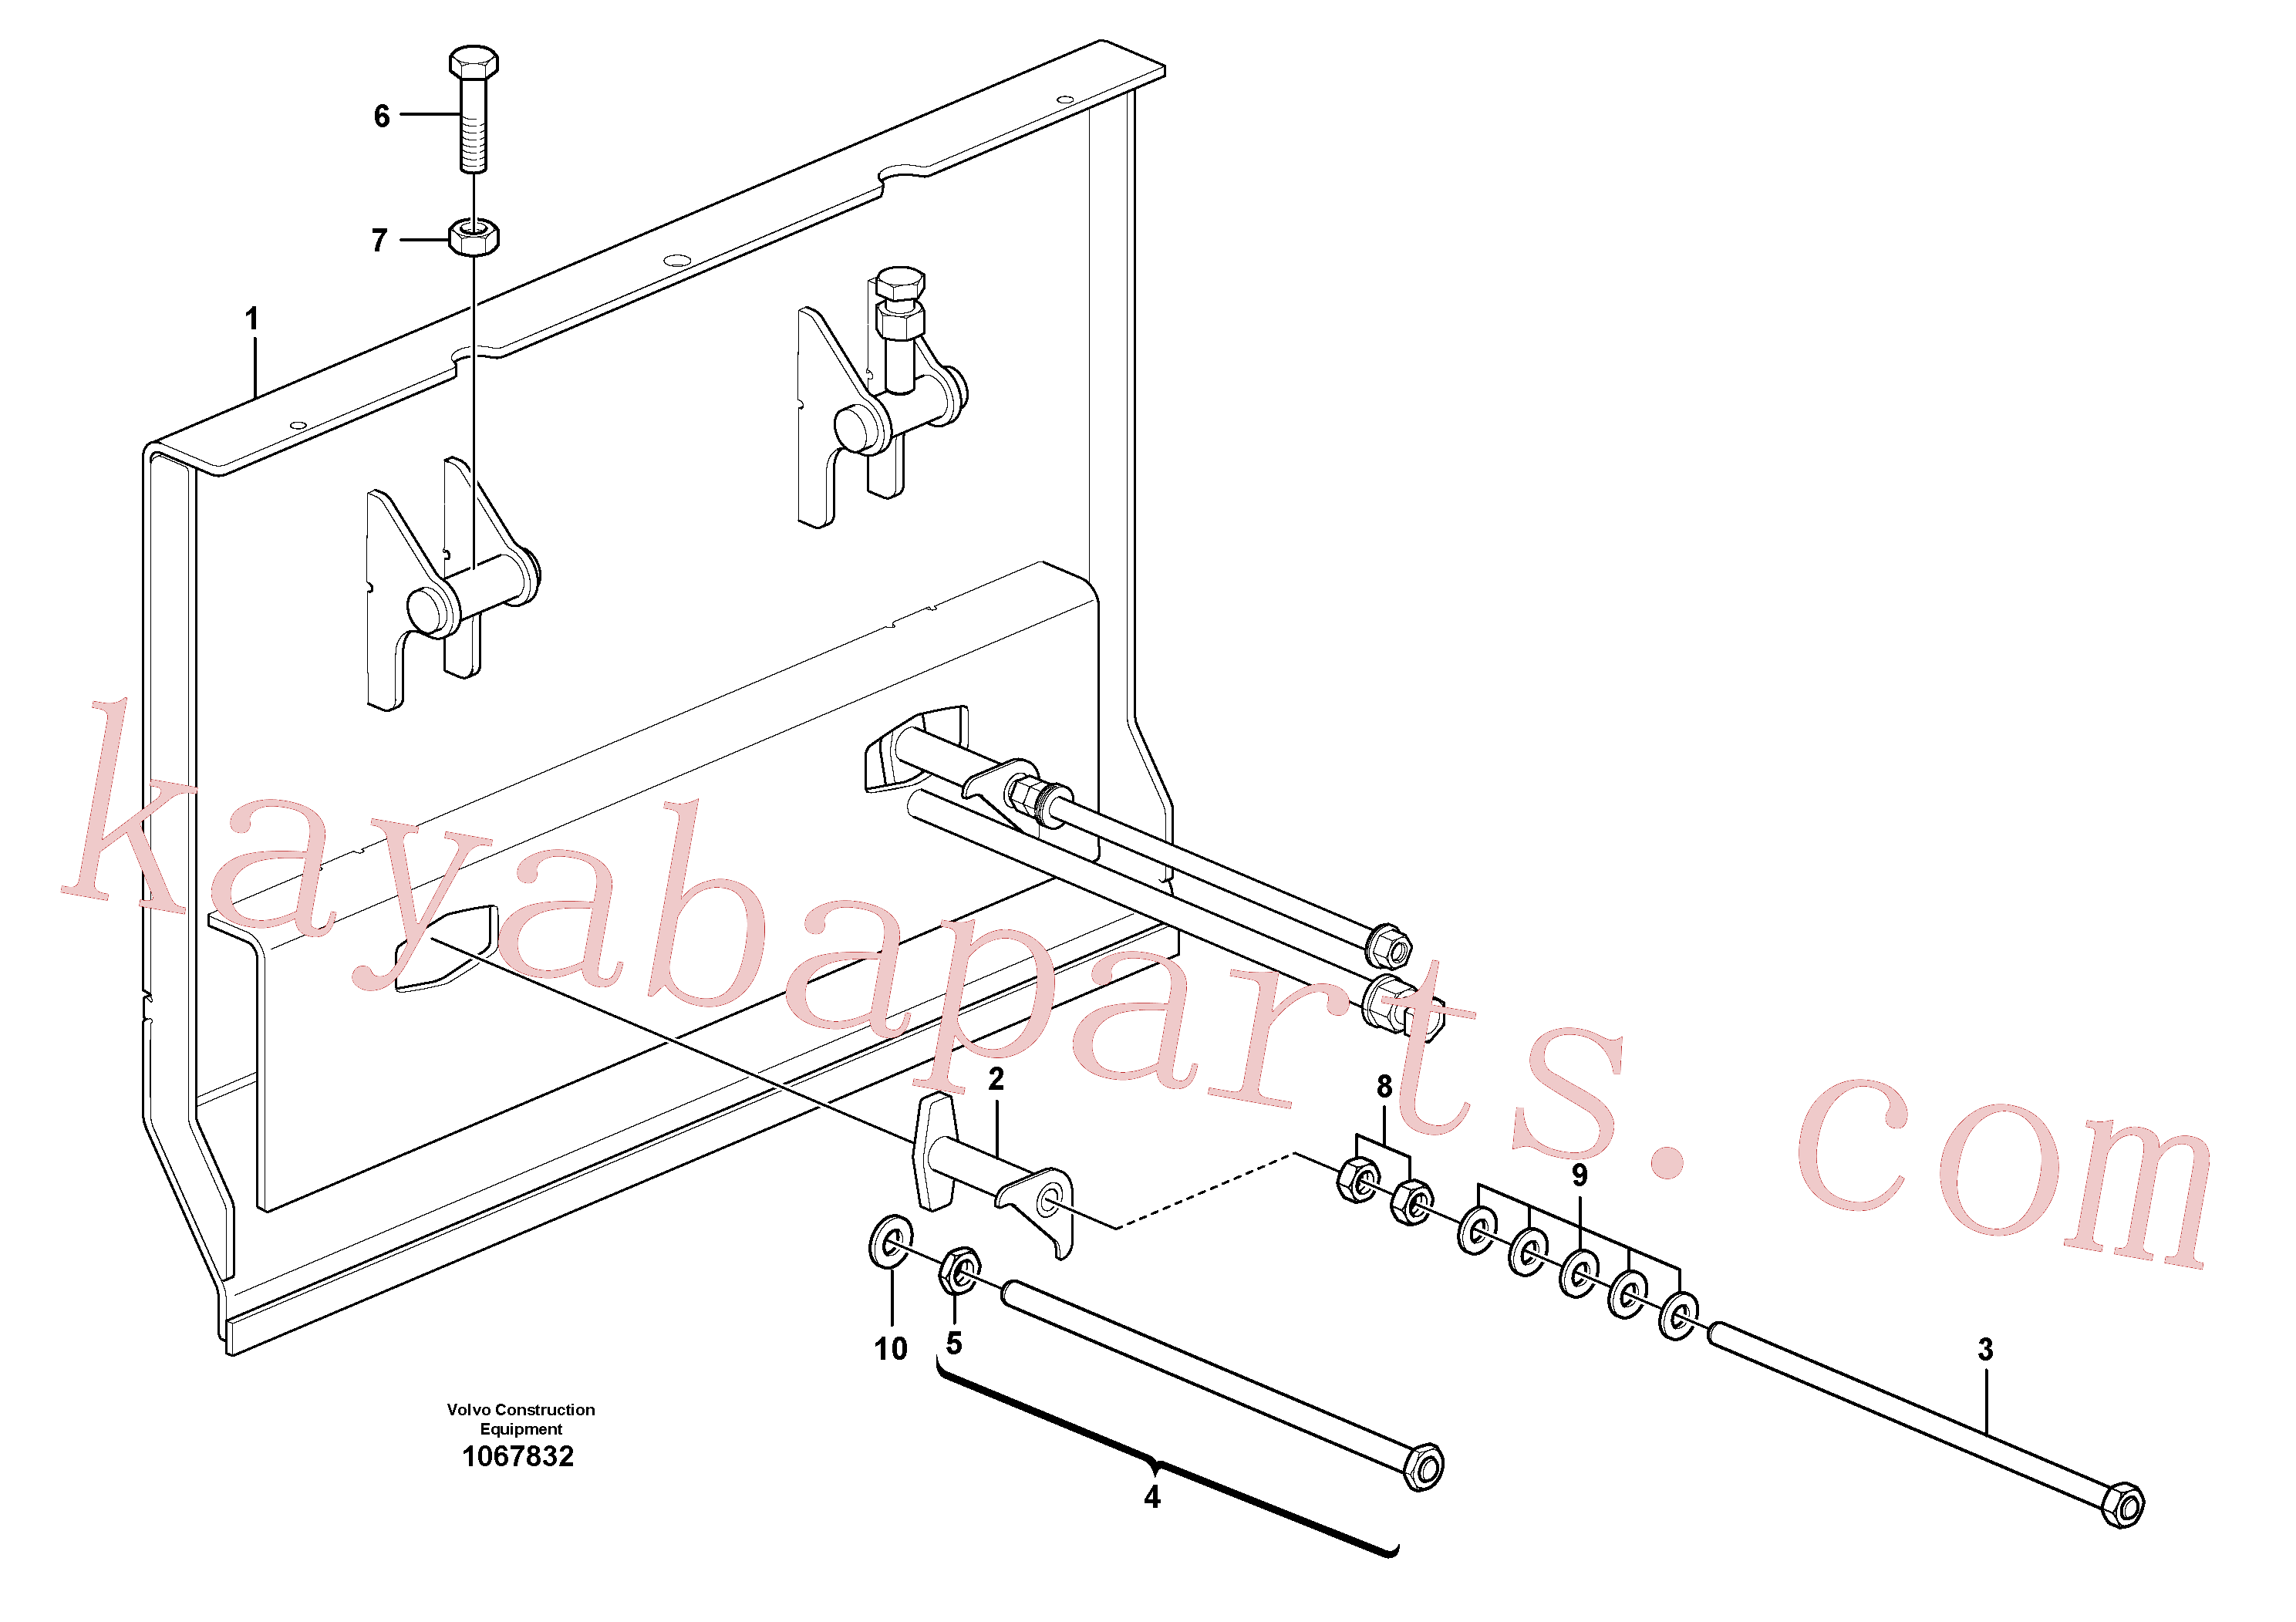 VOE13971072 for Volvo Deflector for extension(1067832 assembly)